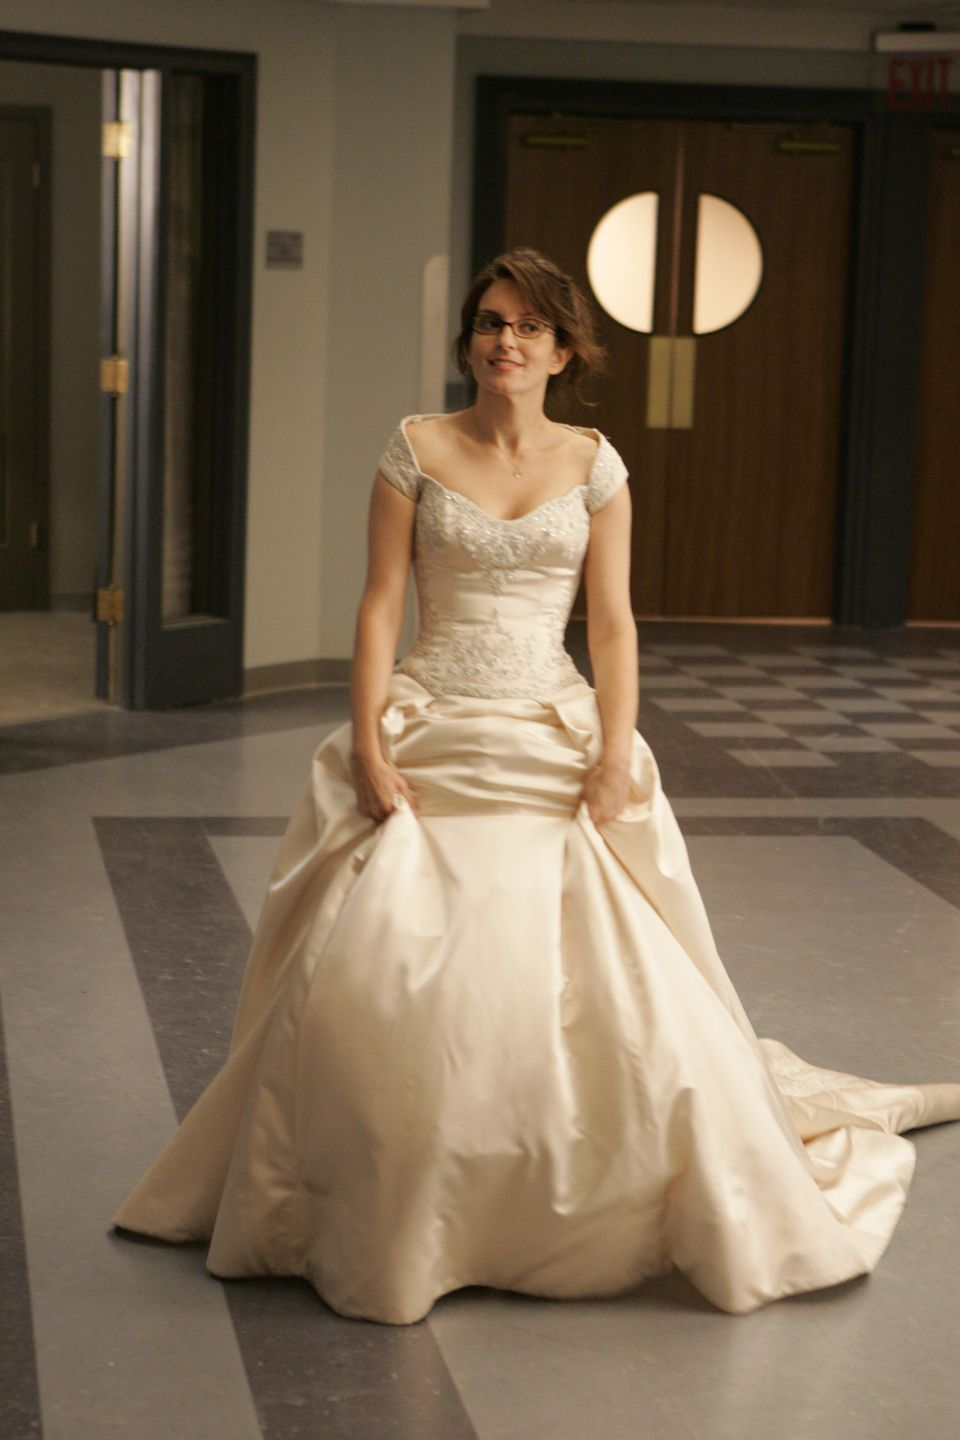 Ham napkin liz lemon wedding dress 30 rock she for Guess dresses for wedding